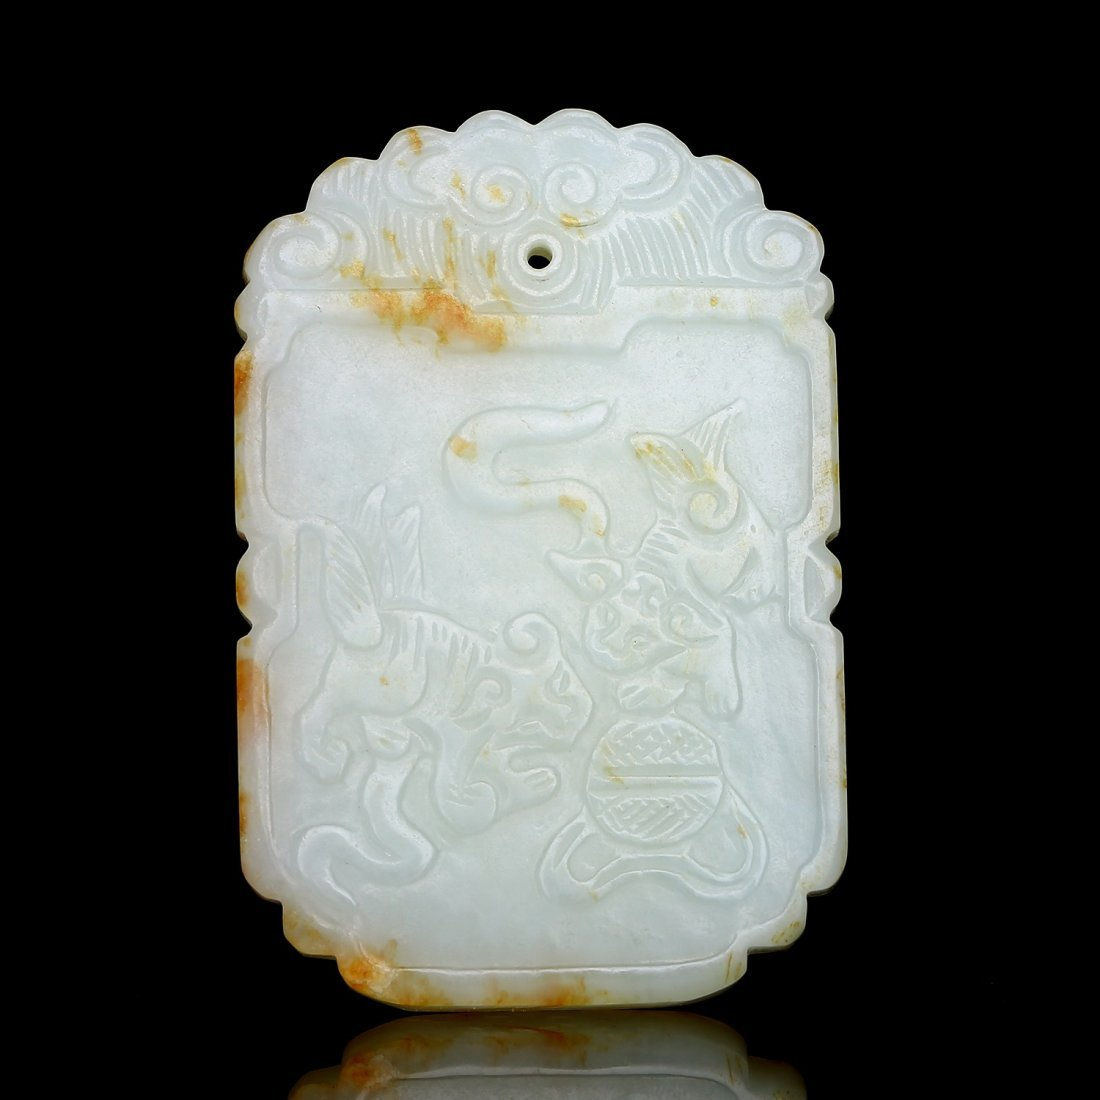 Chinese Qing Dynasty Hetian White Jade Pendant - 7